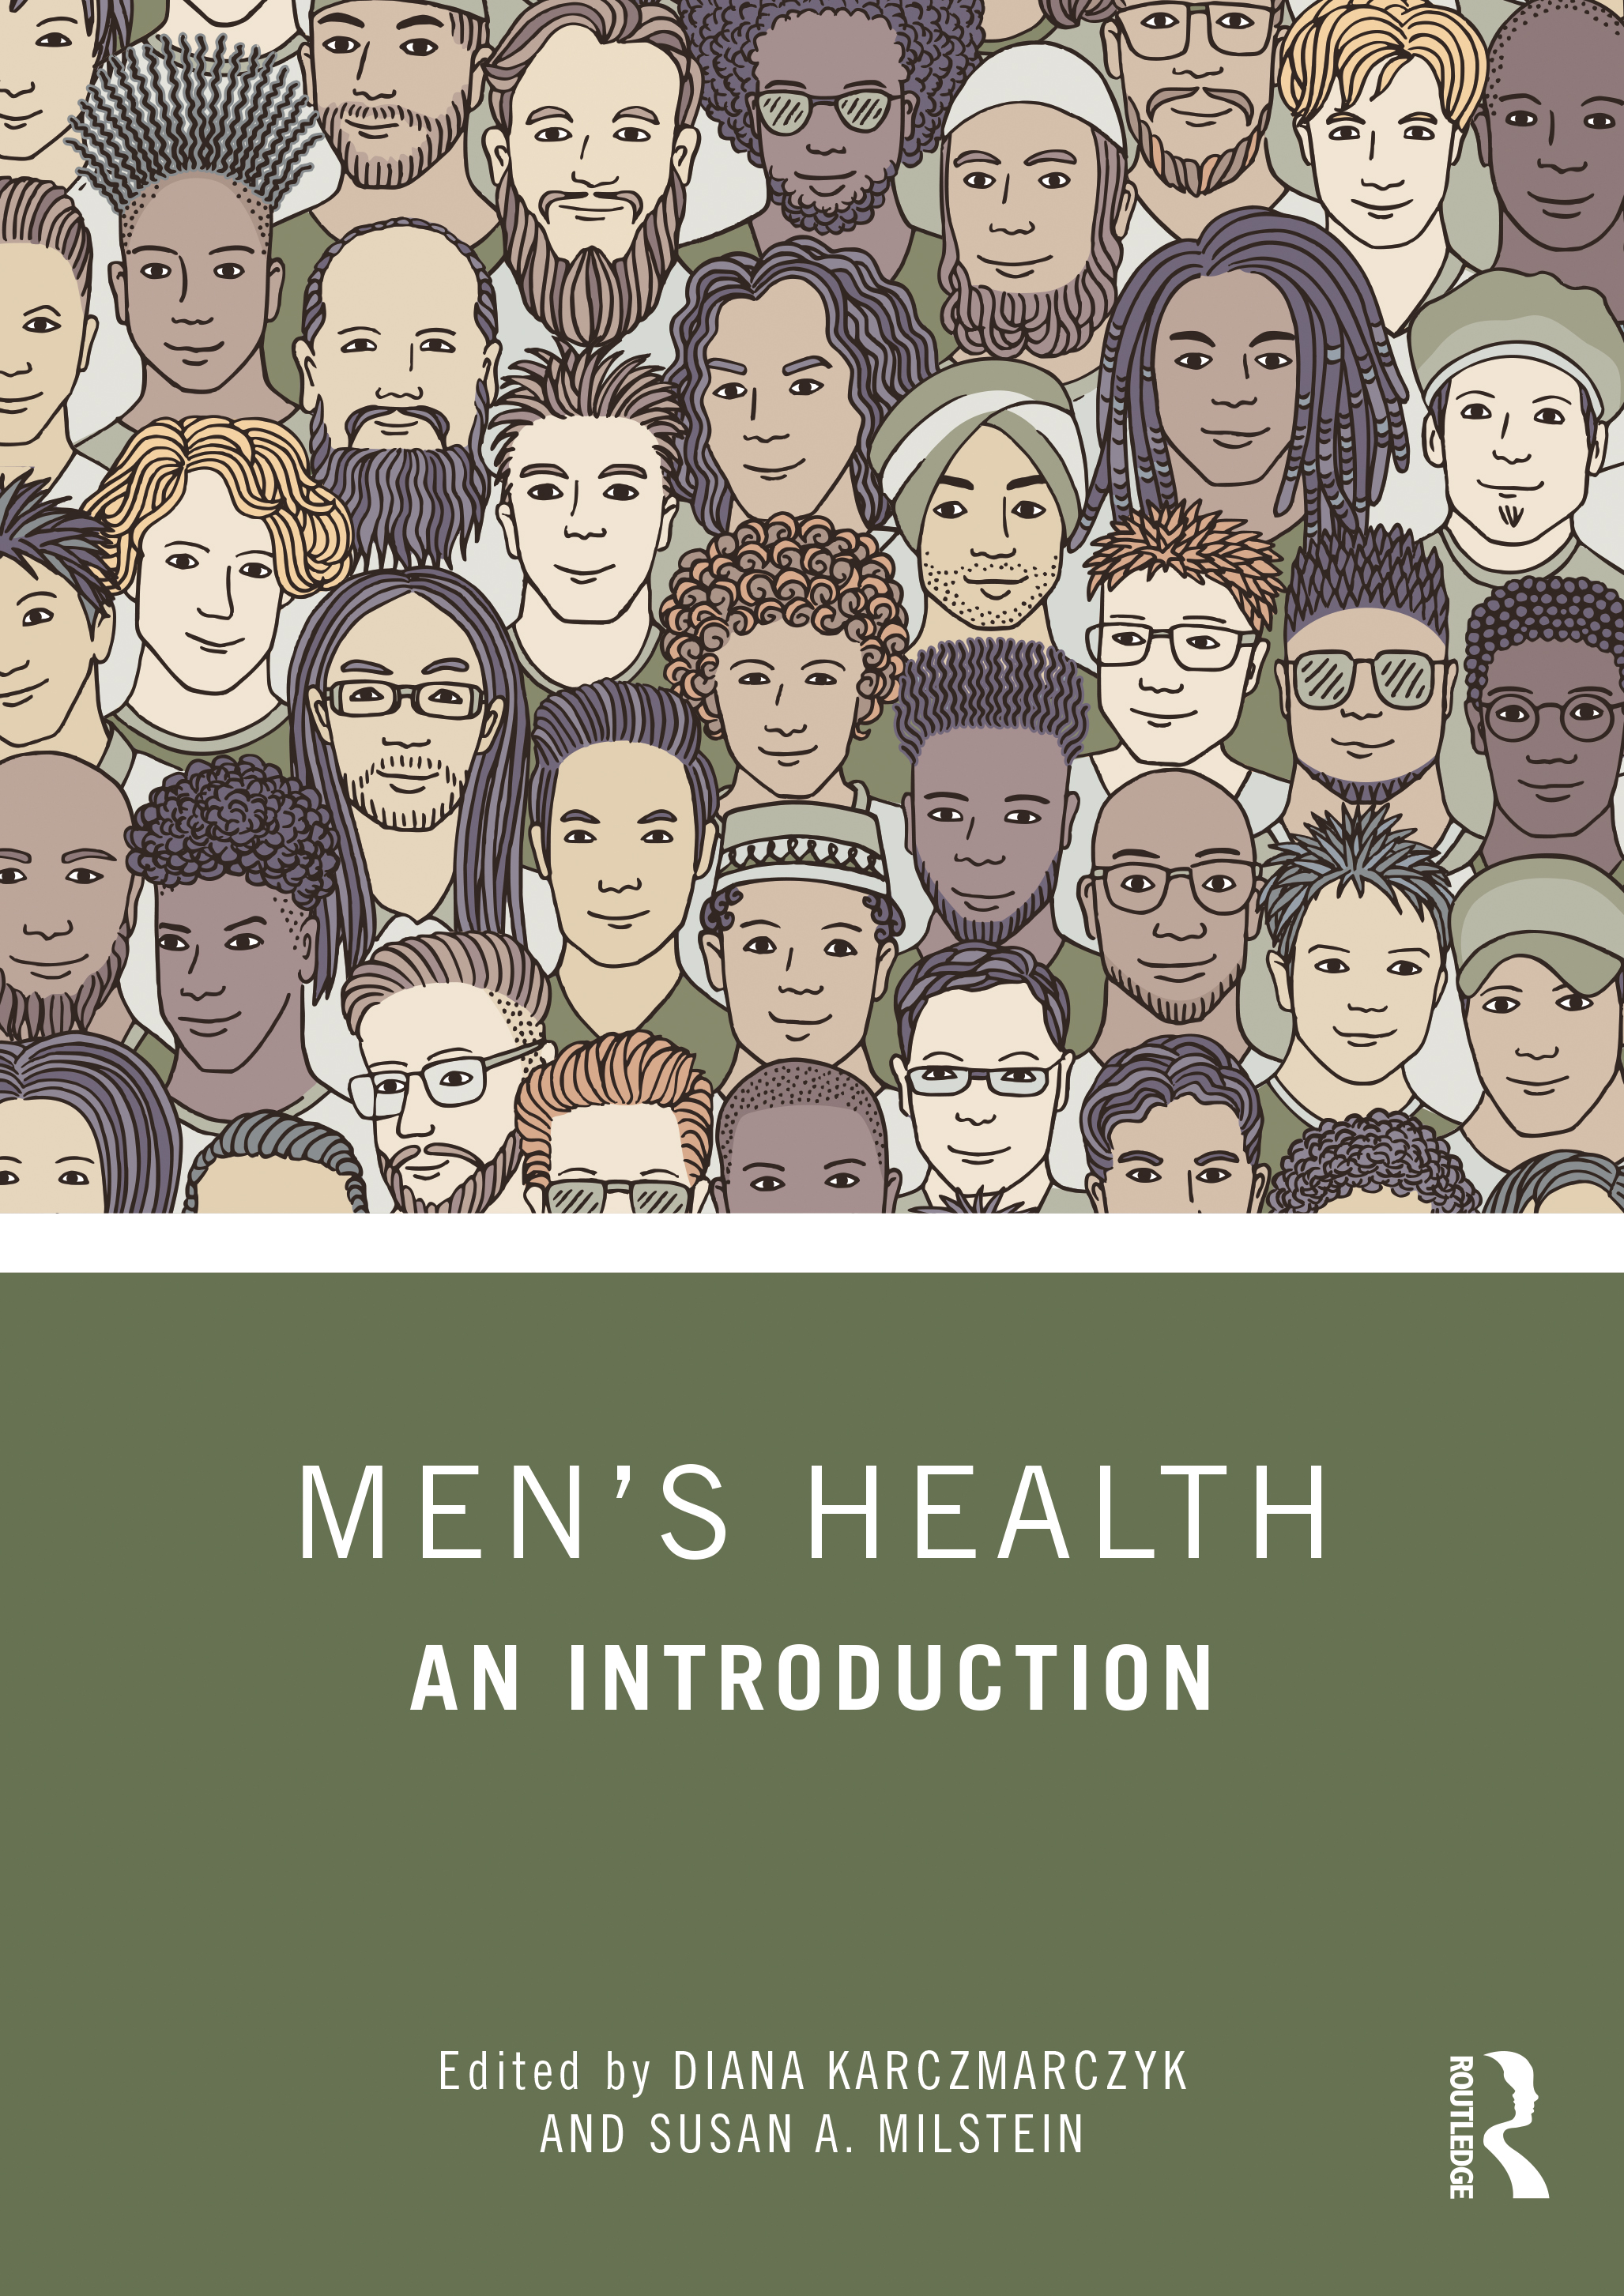 Men's Health: An Introduction book cover